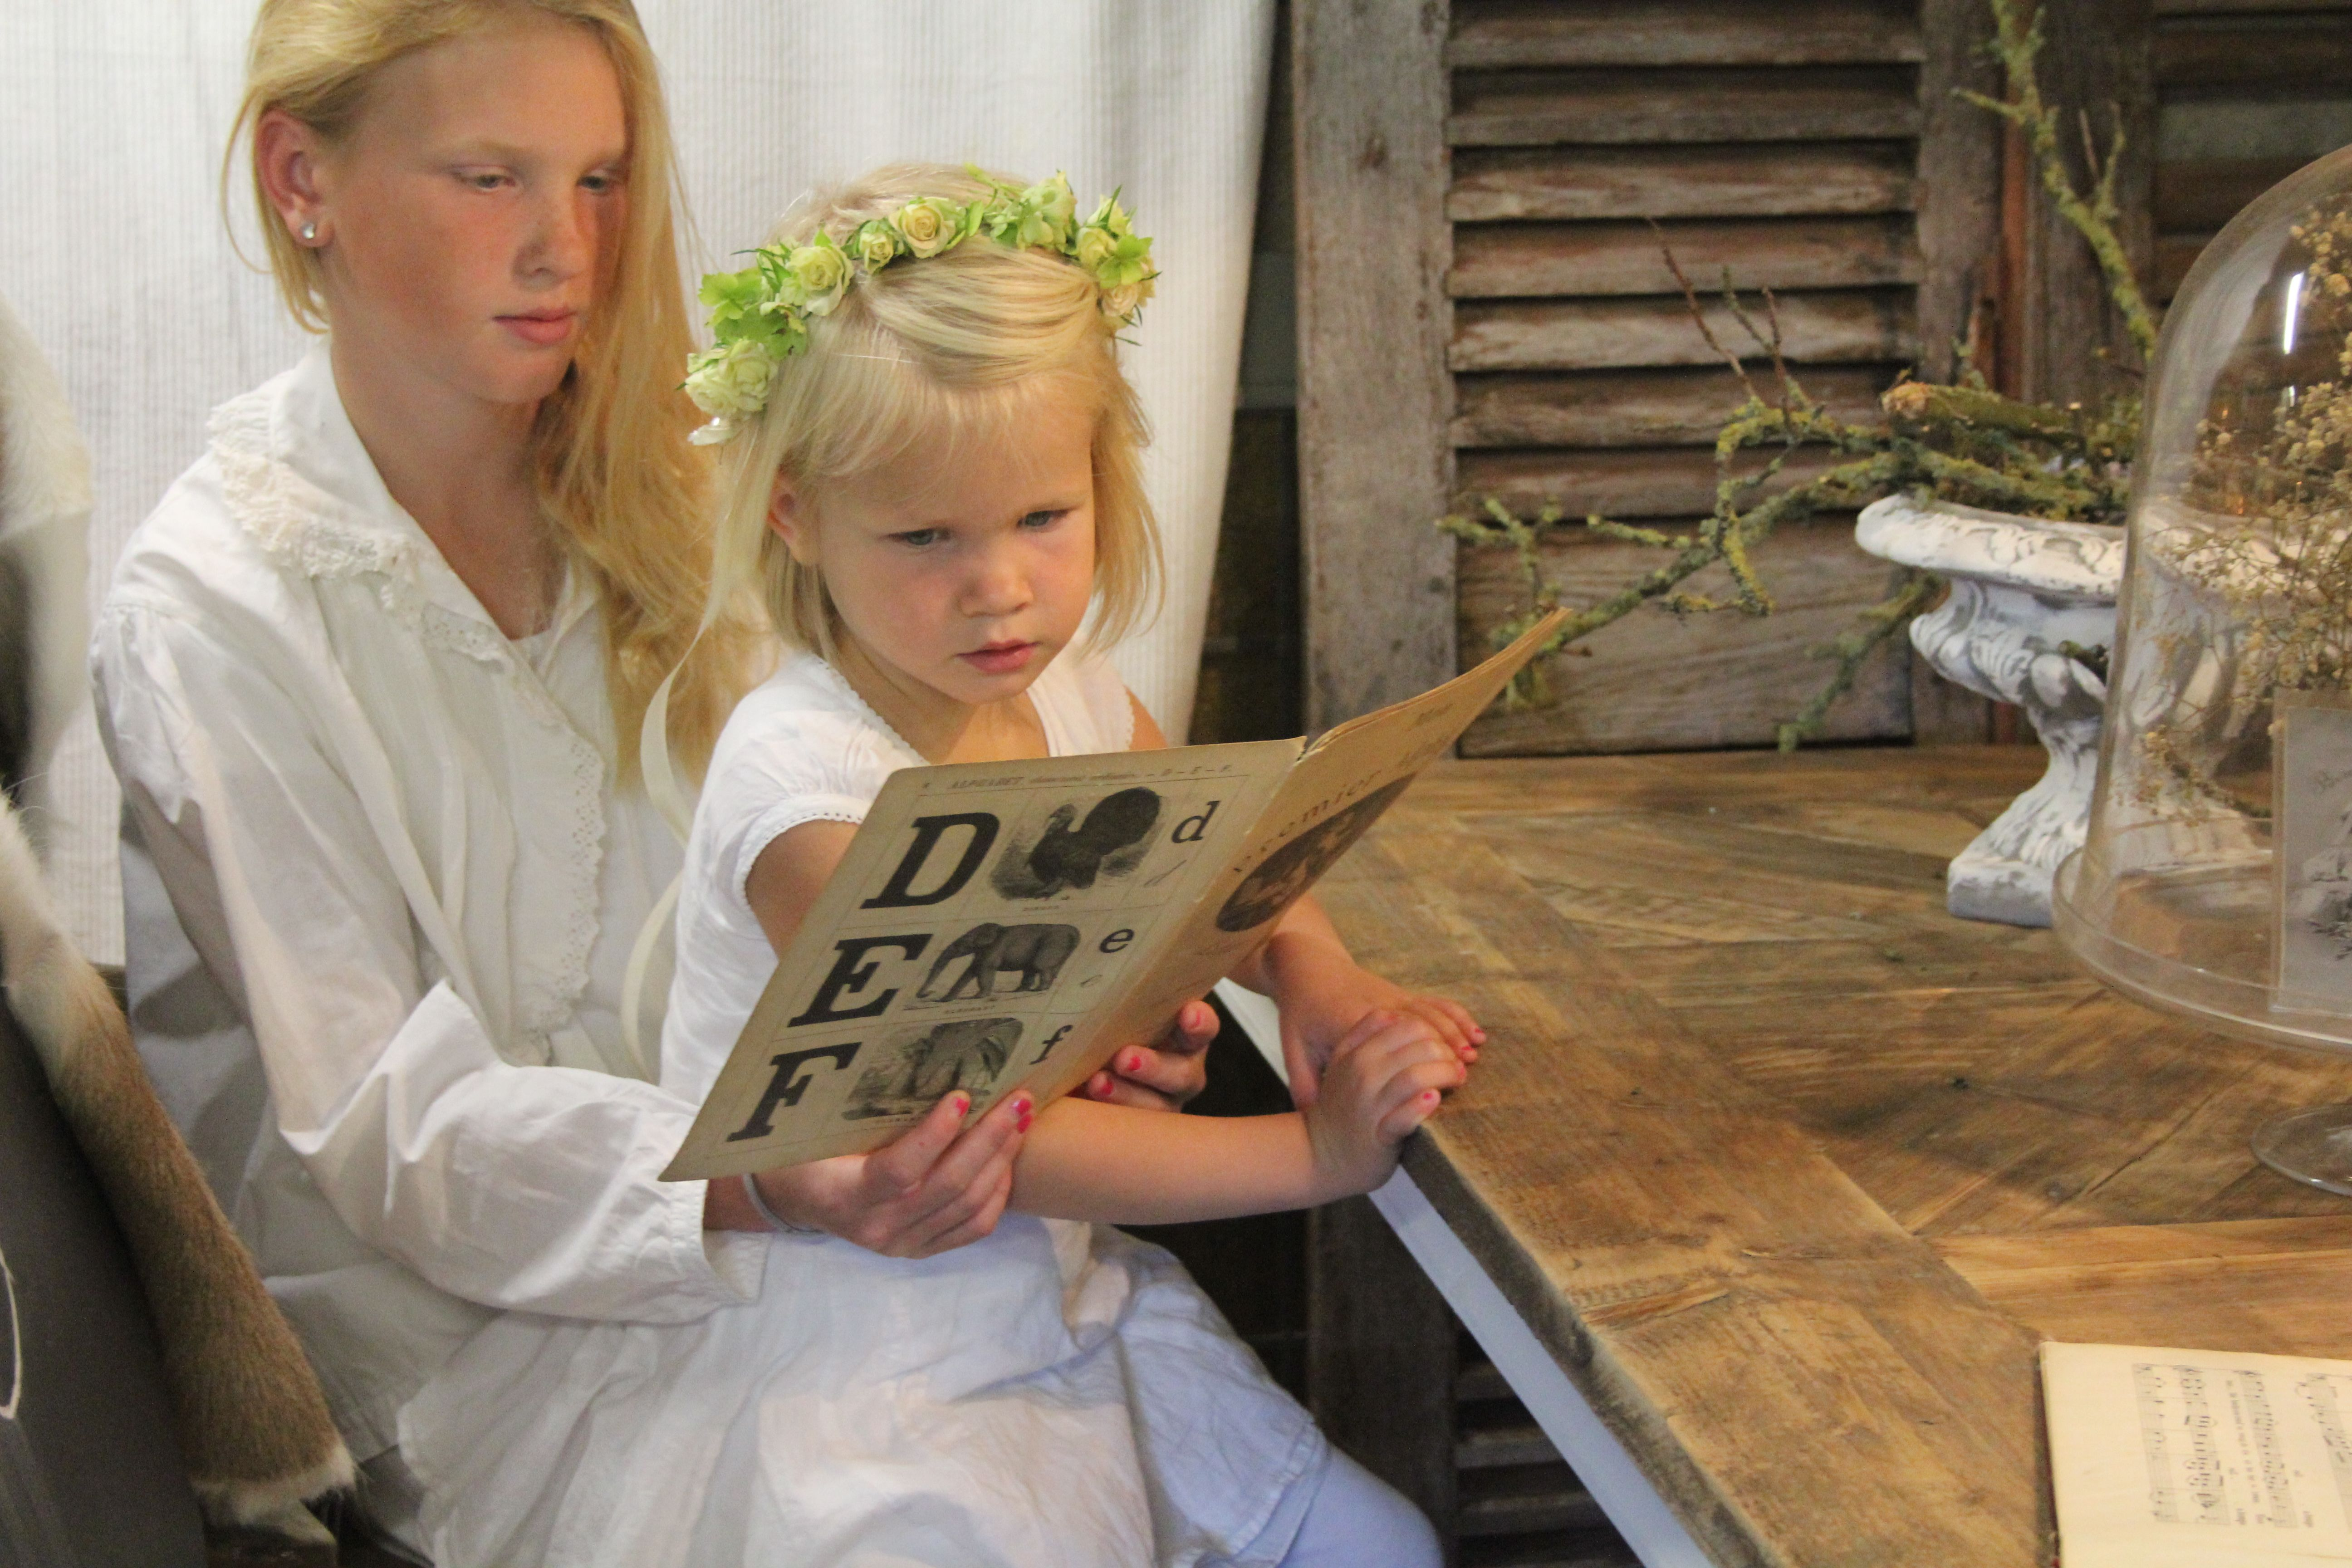 A Good Night Story around the Chateau Mosaique Diningtable!